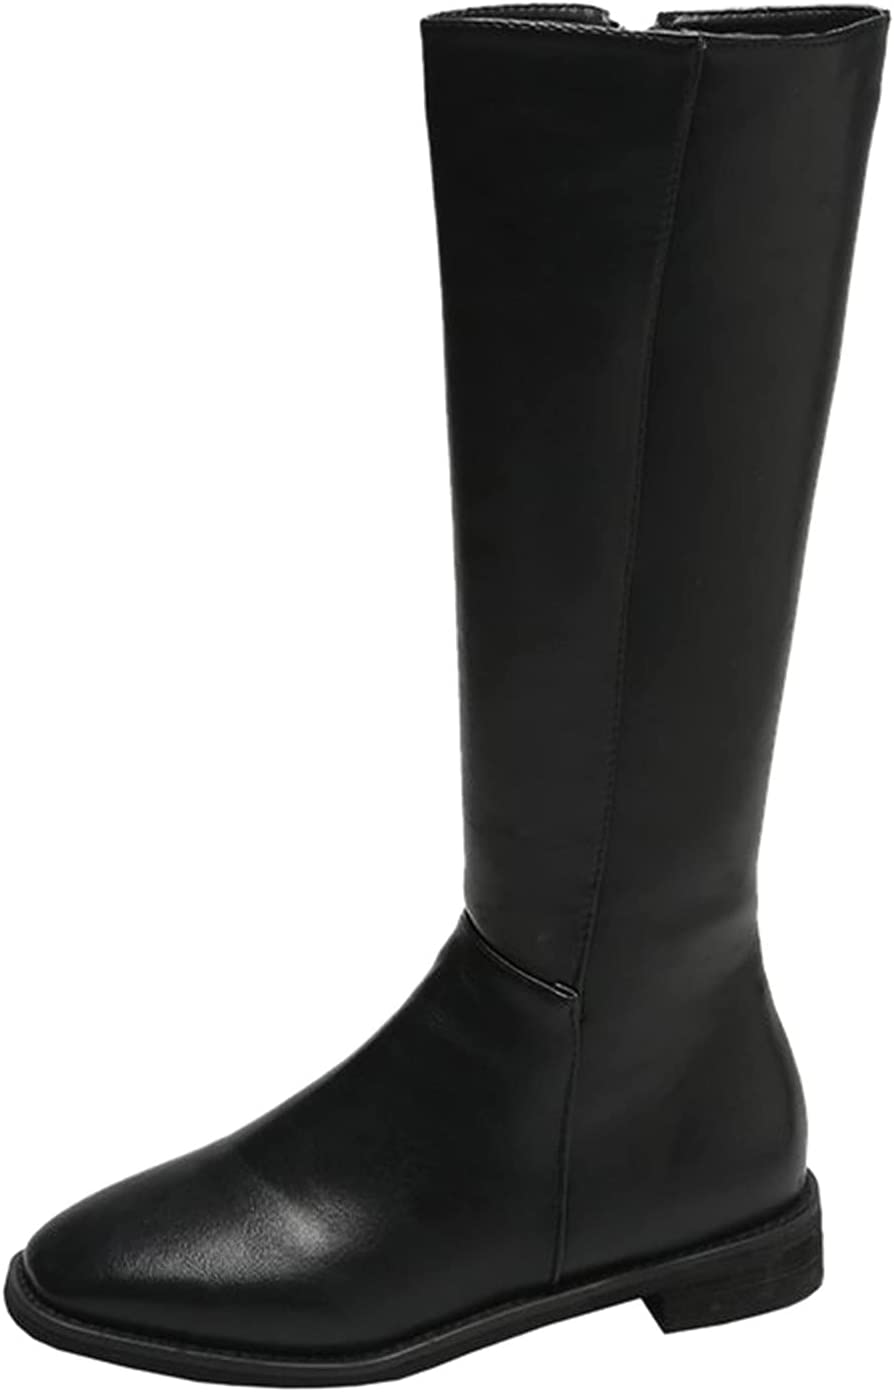 Women's Knee High Boots Fashion Mid Calf Boots Casual Breathable Chunky High Heels Ankle Bootie Retro Zipper Combat Boots Short Boots Winter Cowboy Boots Comfortable Shoes Sneakers (Black, 8)